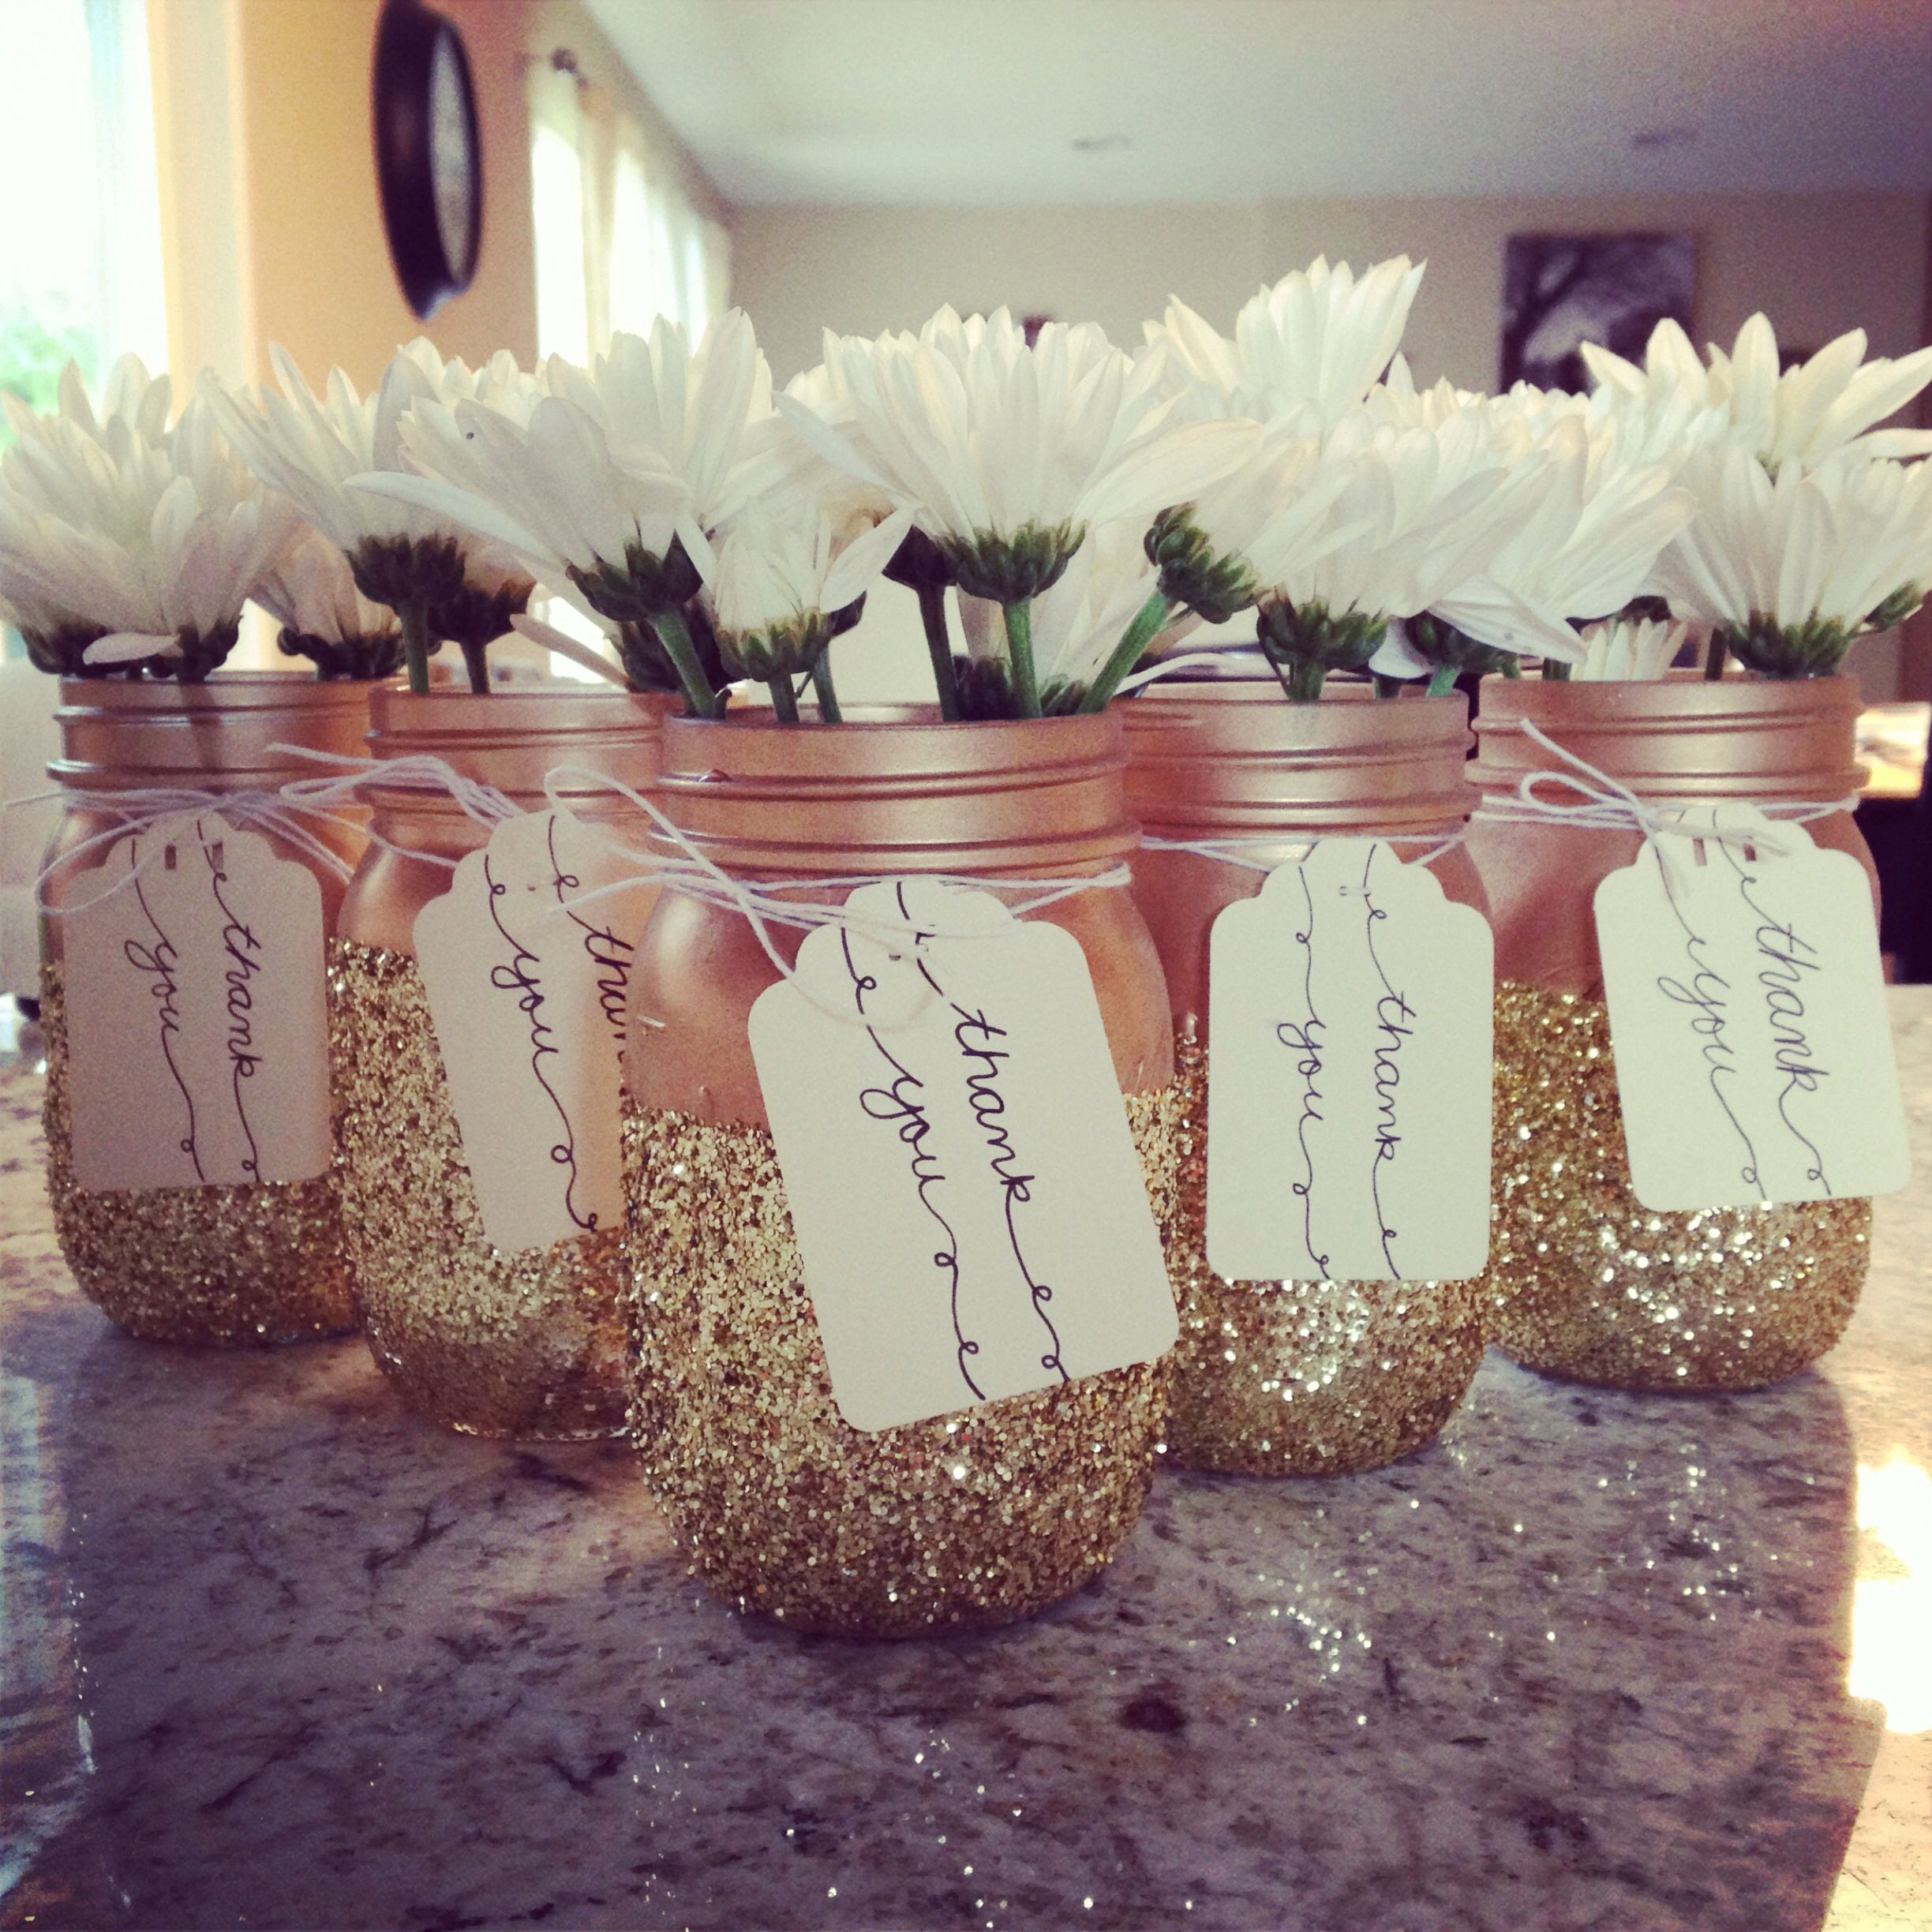 DIY Party Favors That Doubled As Table Decor! Homemade